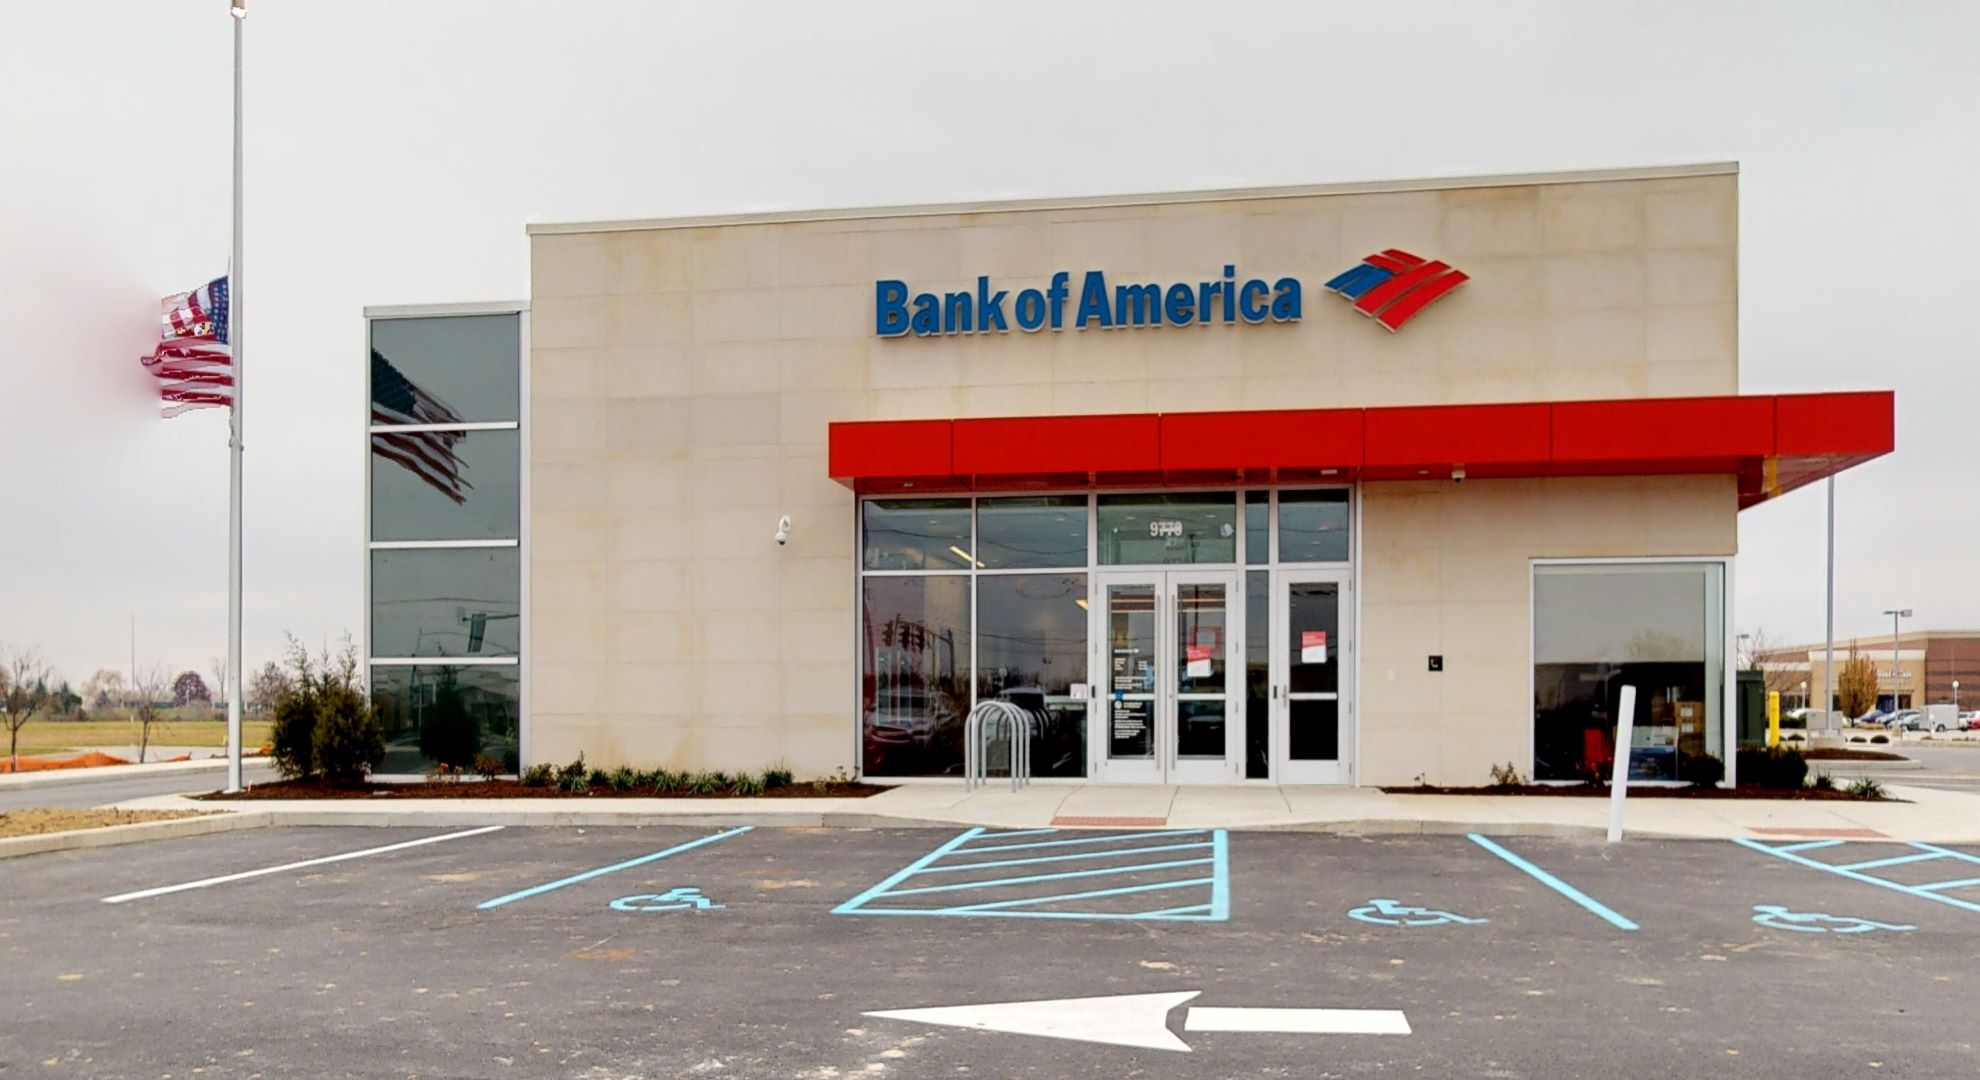 Bank of America financial center with drive-thru ATM   9770 E 116th St, Fishers, IN 46037